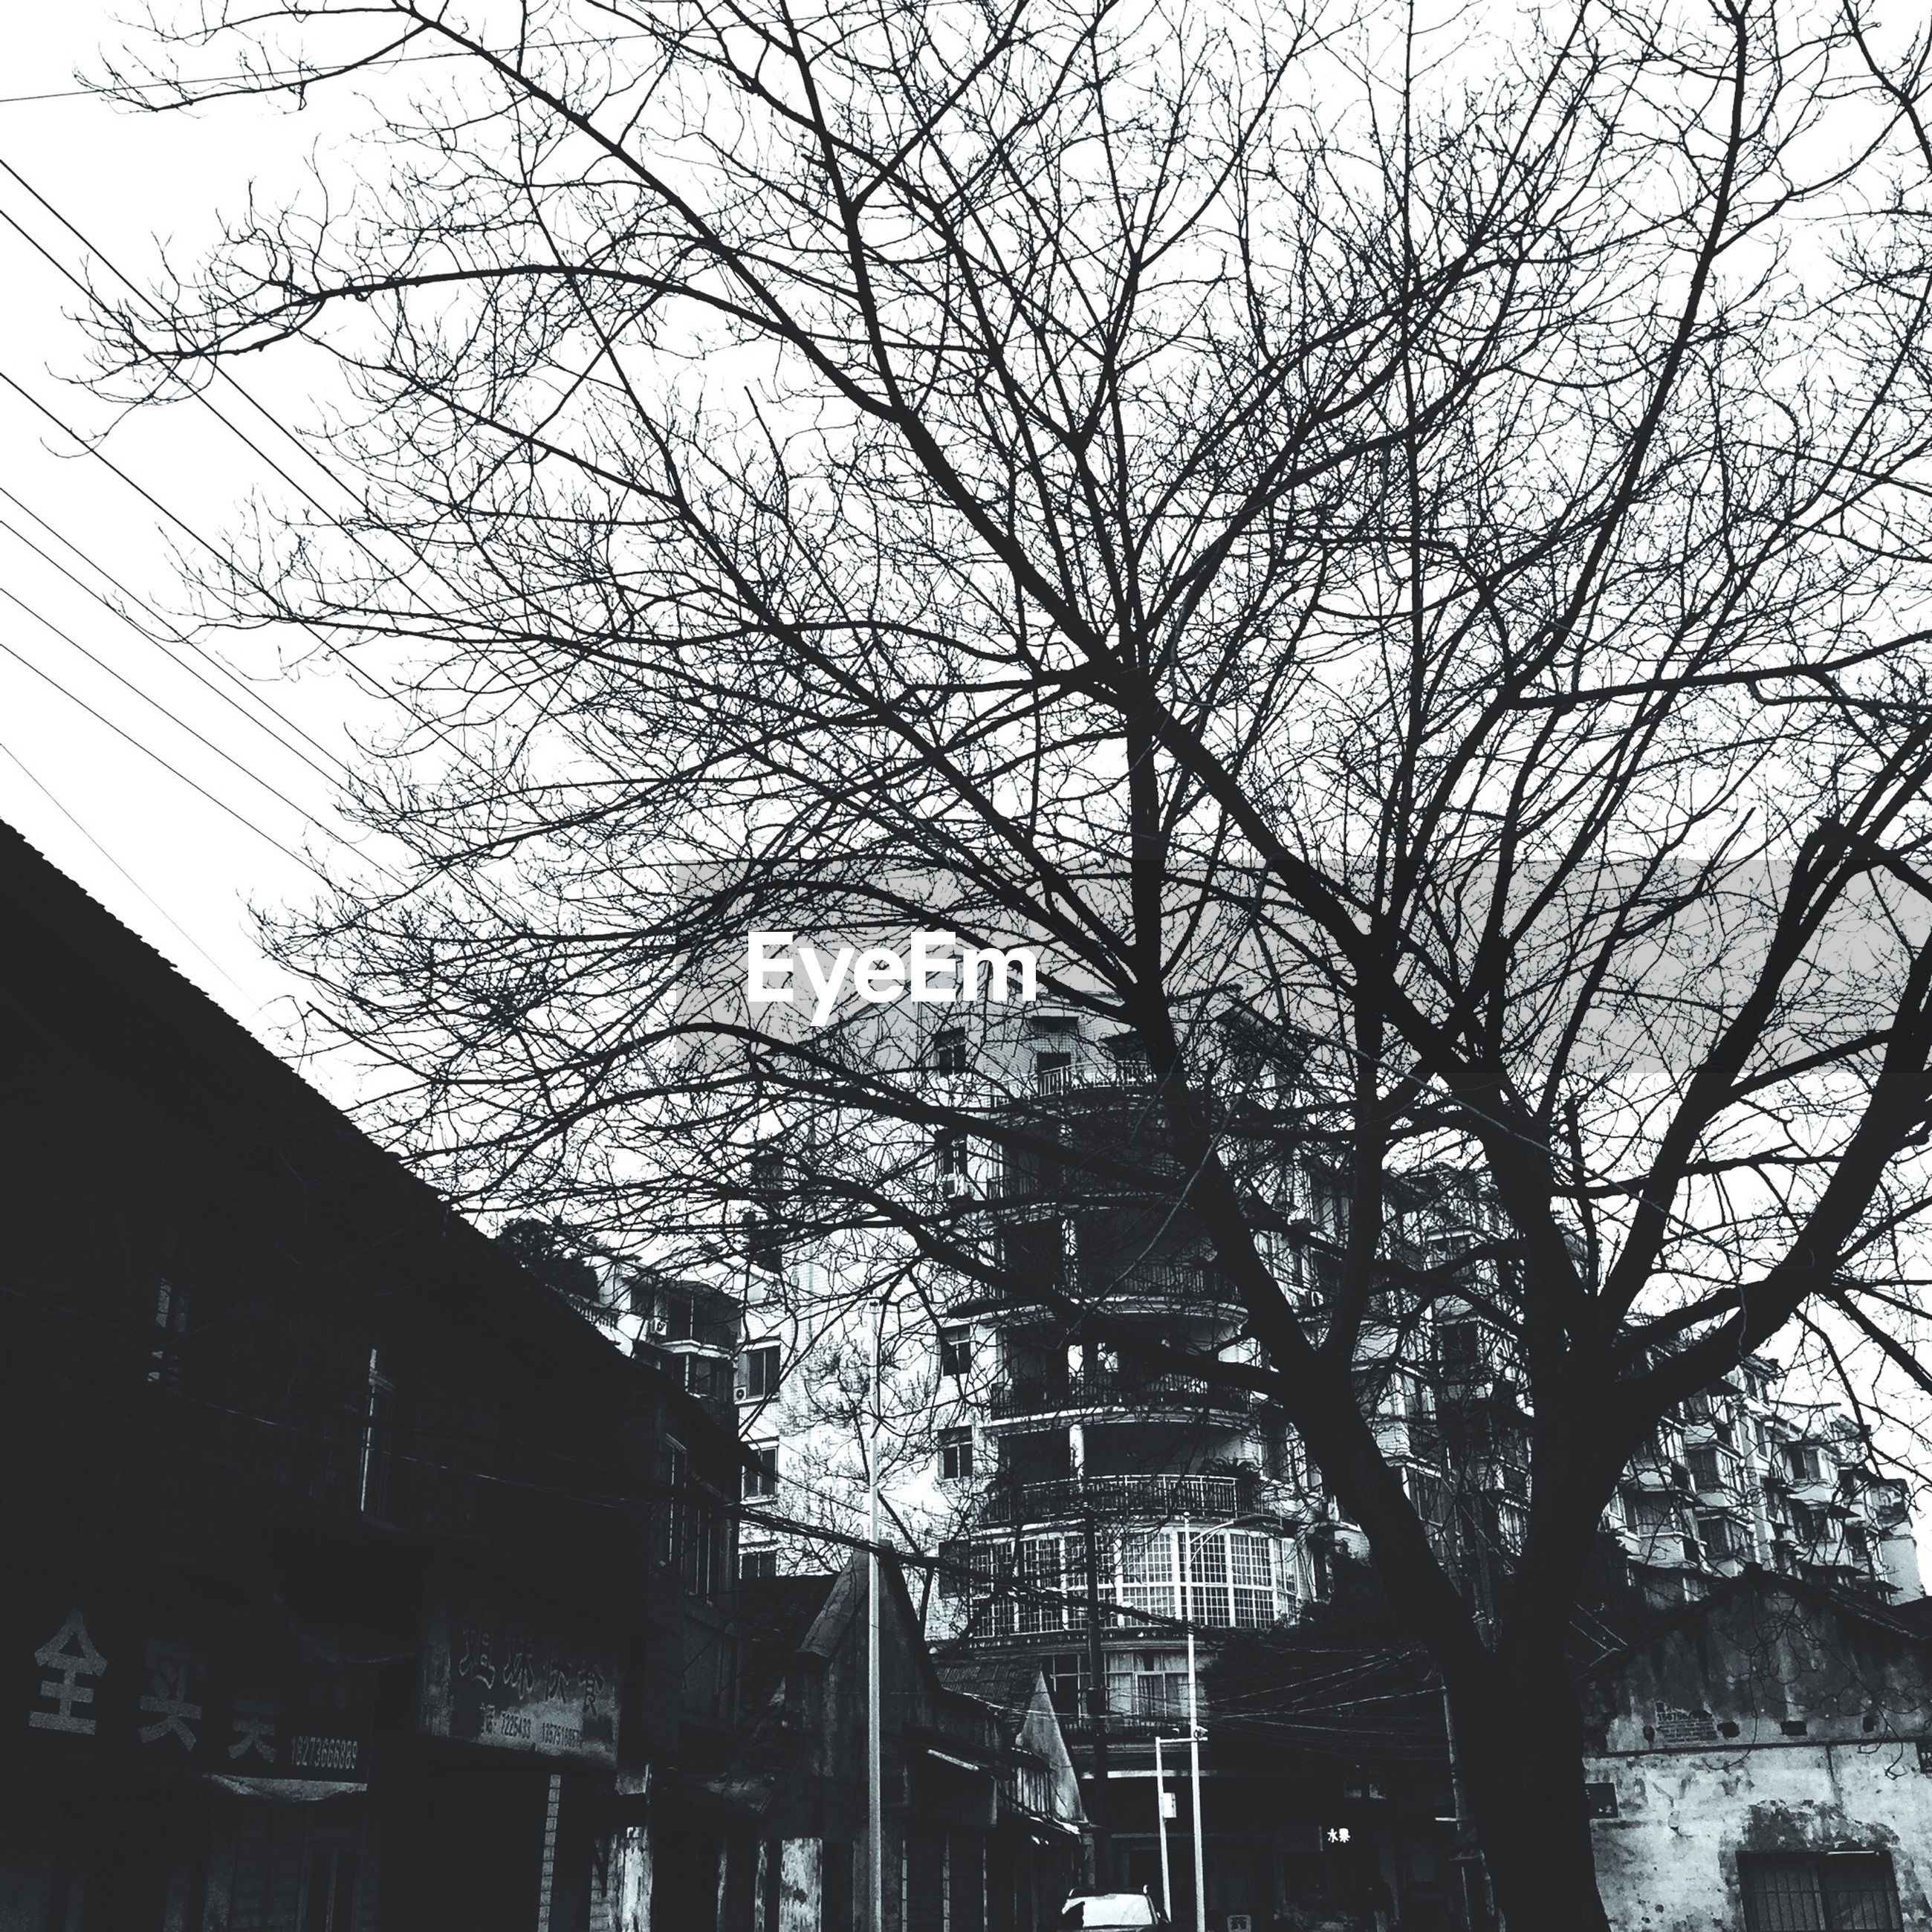 low angle view, architecture, built structure, building exterior, tree, branch, bare tree, building, sky, lighting equipment, residential building, residential structure, power line, house, street light, city, outdoors, no people, illuminated, electricity